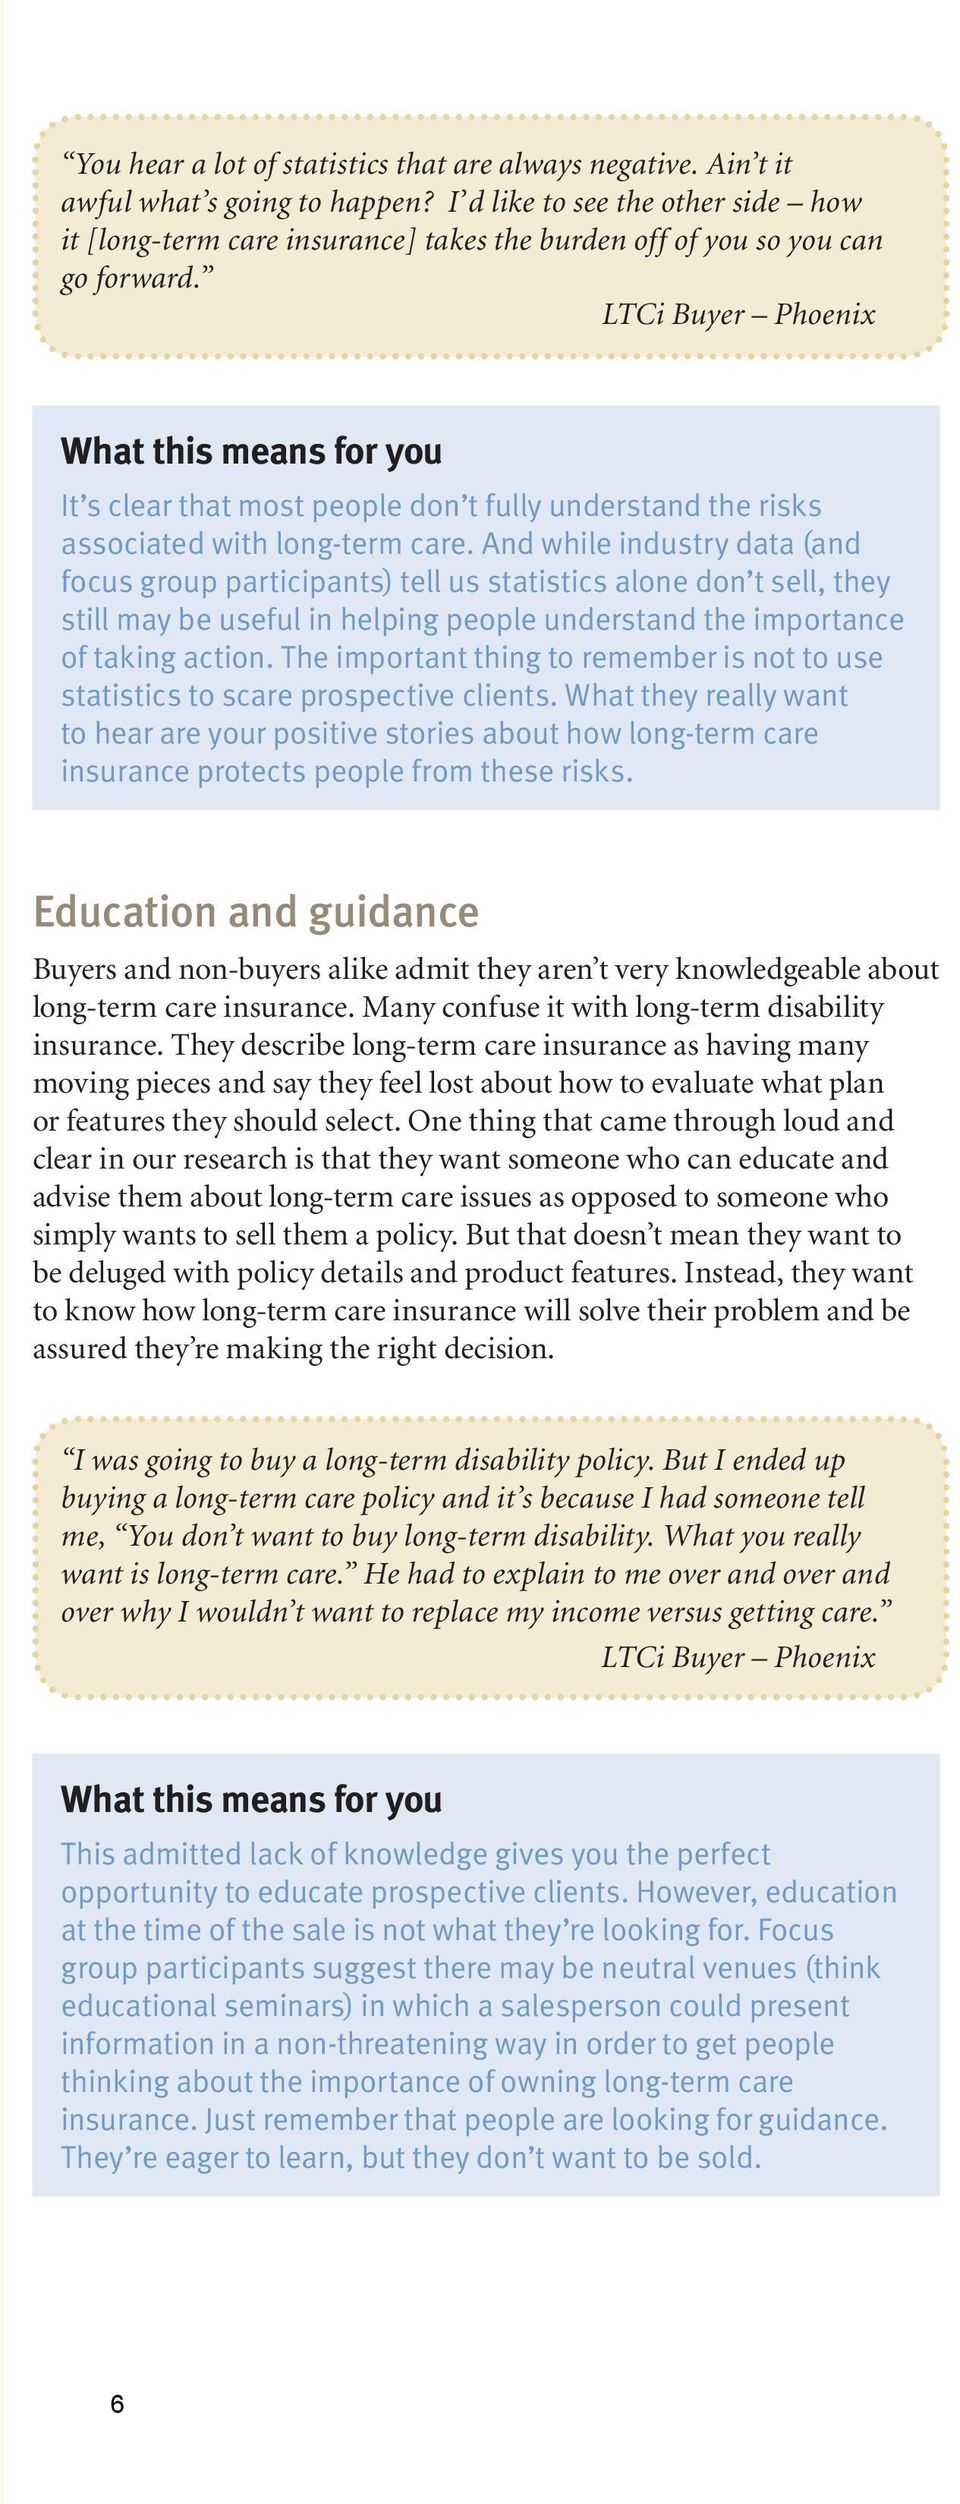 LTCi Buyer Phoenix It s clear that most people don t fully understand the risks associated with long-term care.